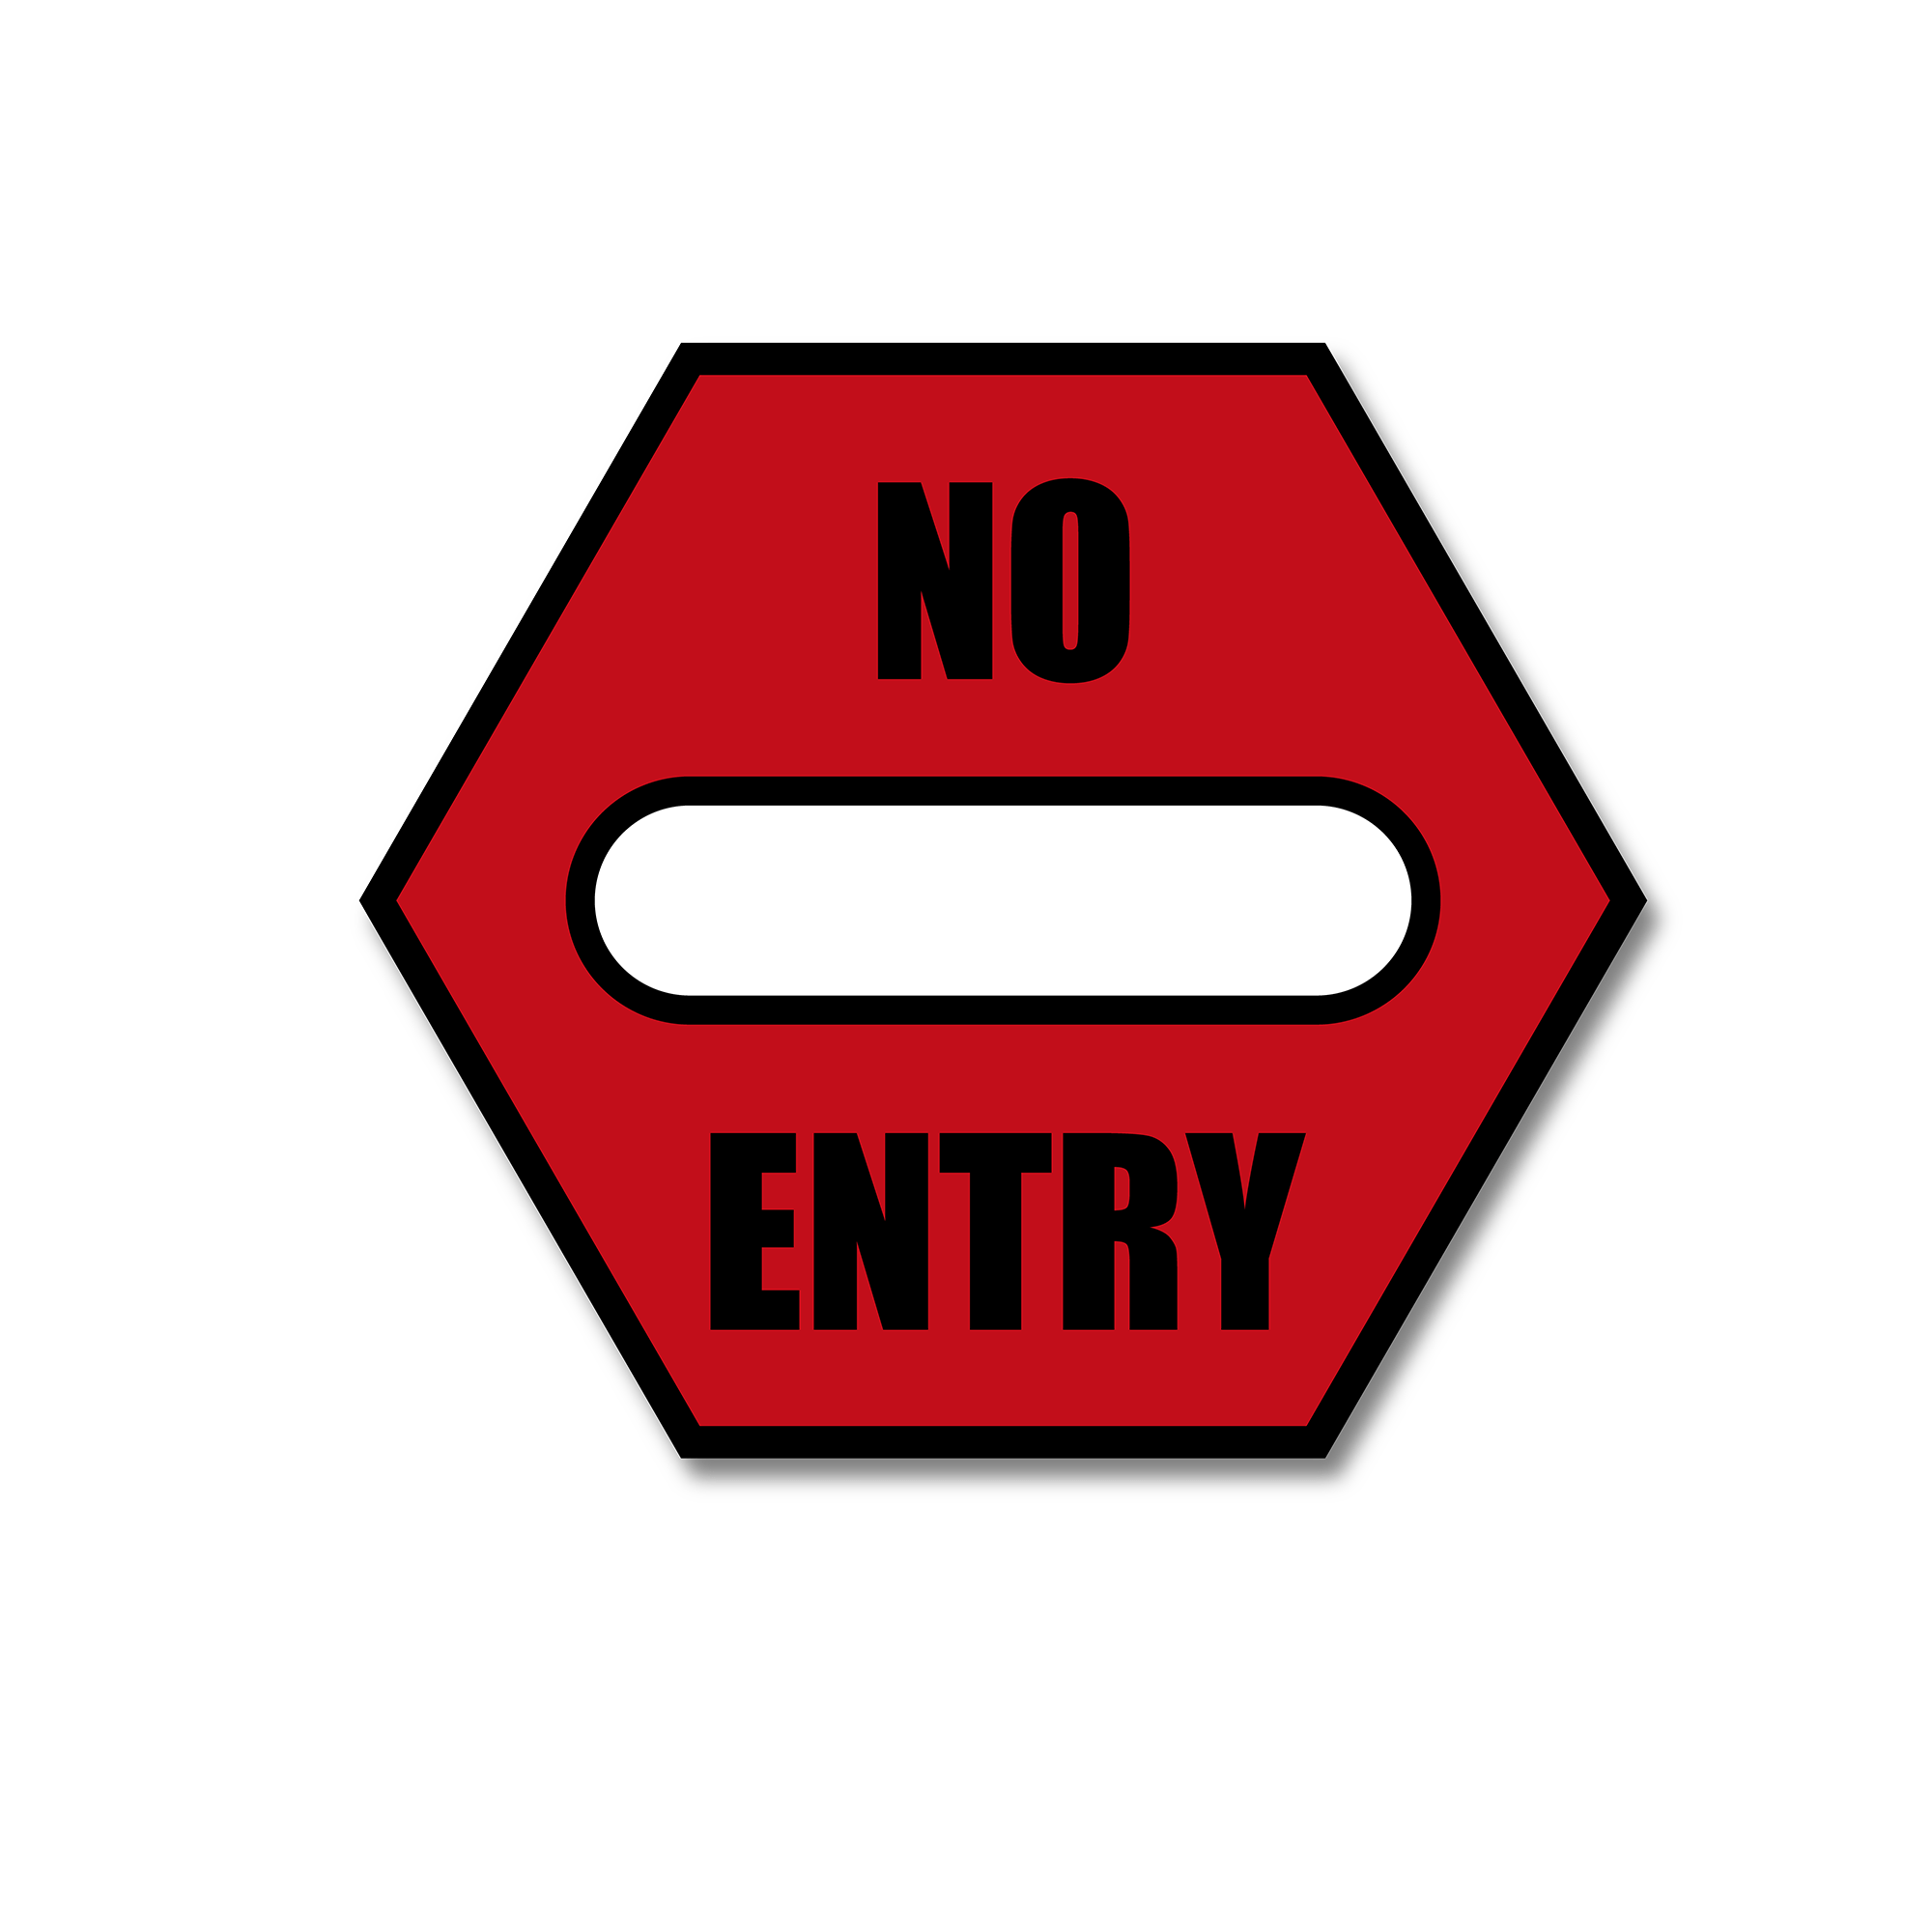 No Entry - Spot Floor Safety Sticker (Floor Shark) - Rounded Edge Store